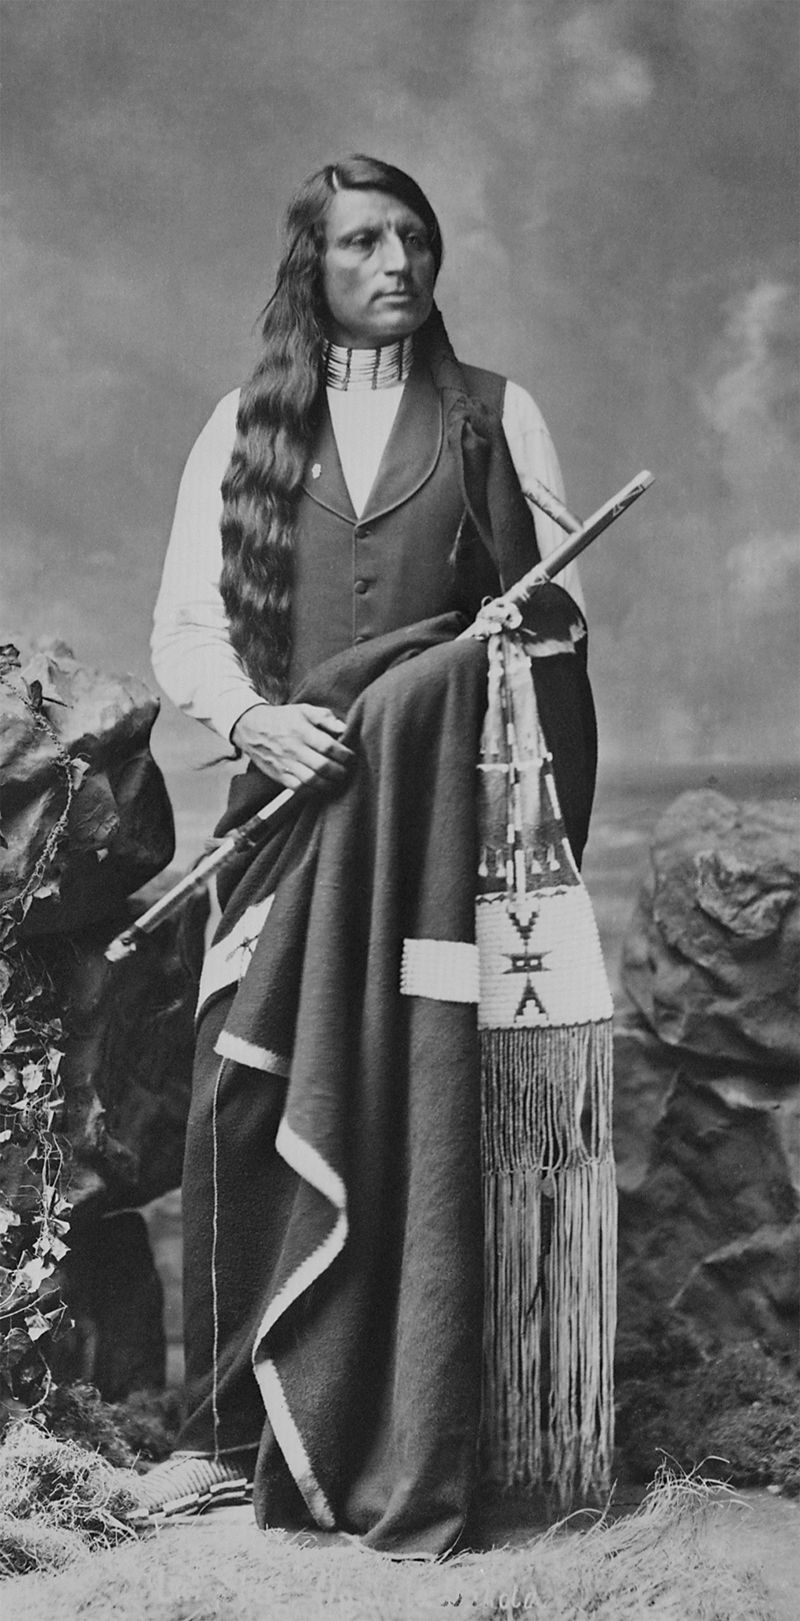 An old photograph of Red Shirt aka Ogalesha - Sioux 1880 [AA].